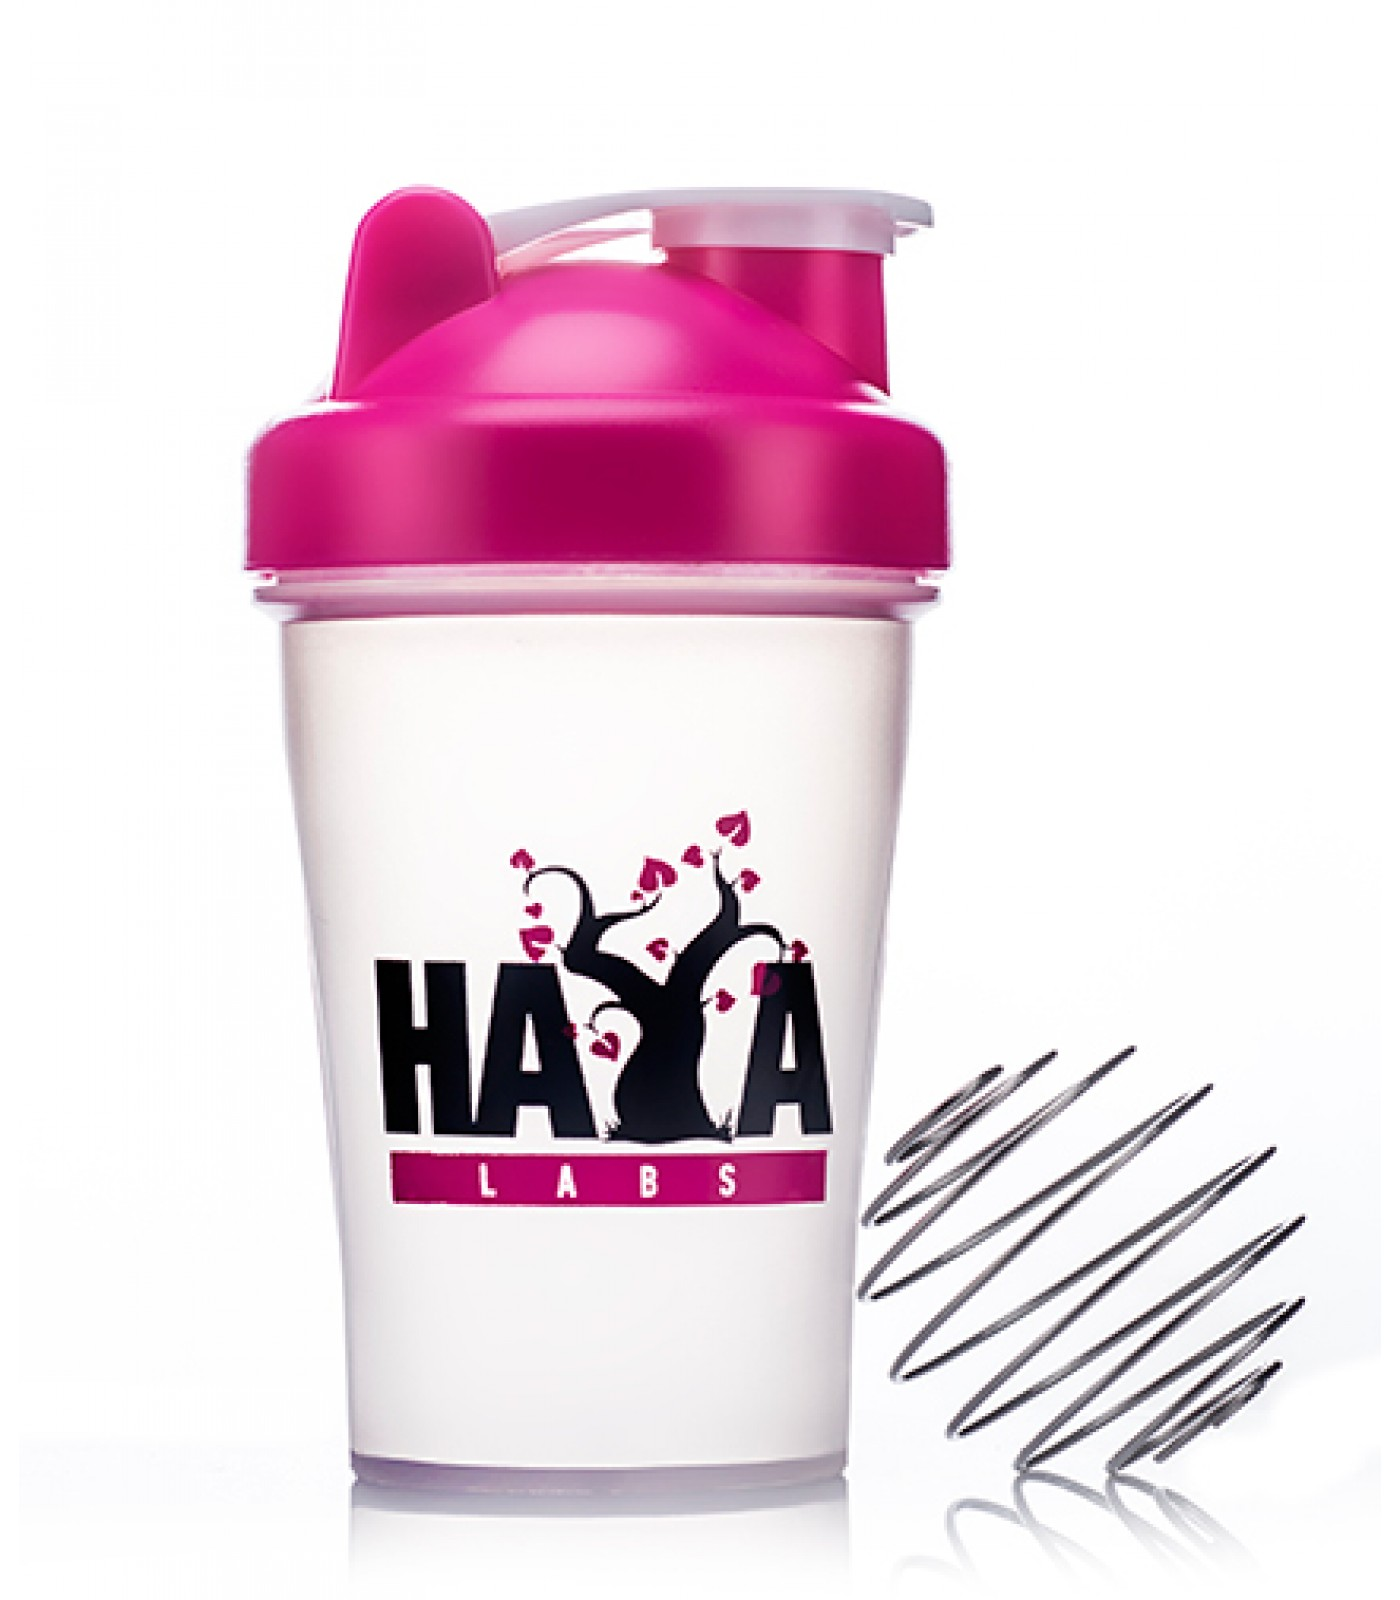 Haya Labs - Blender Bottle / 400ml.